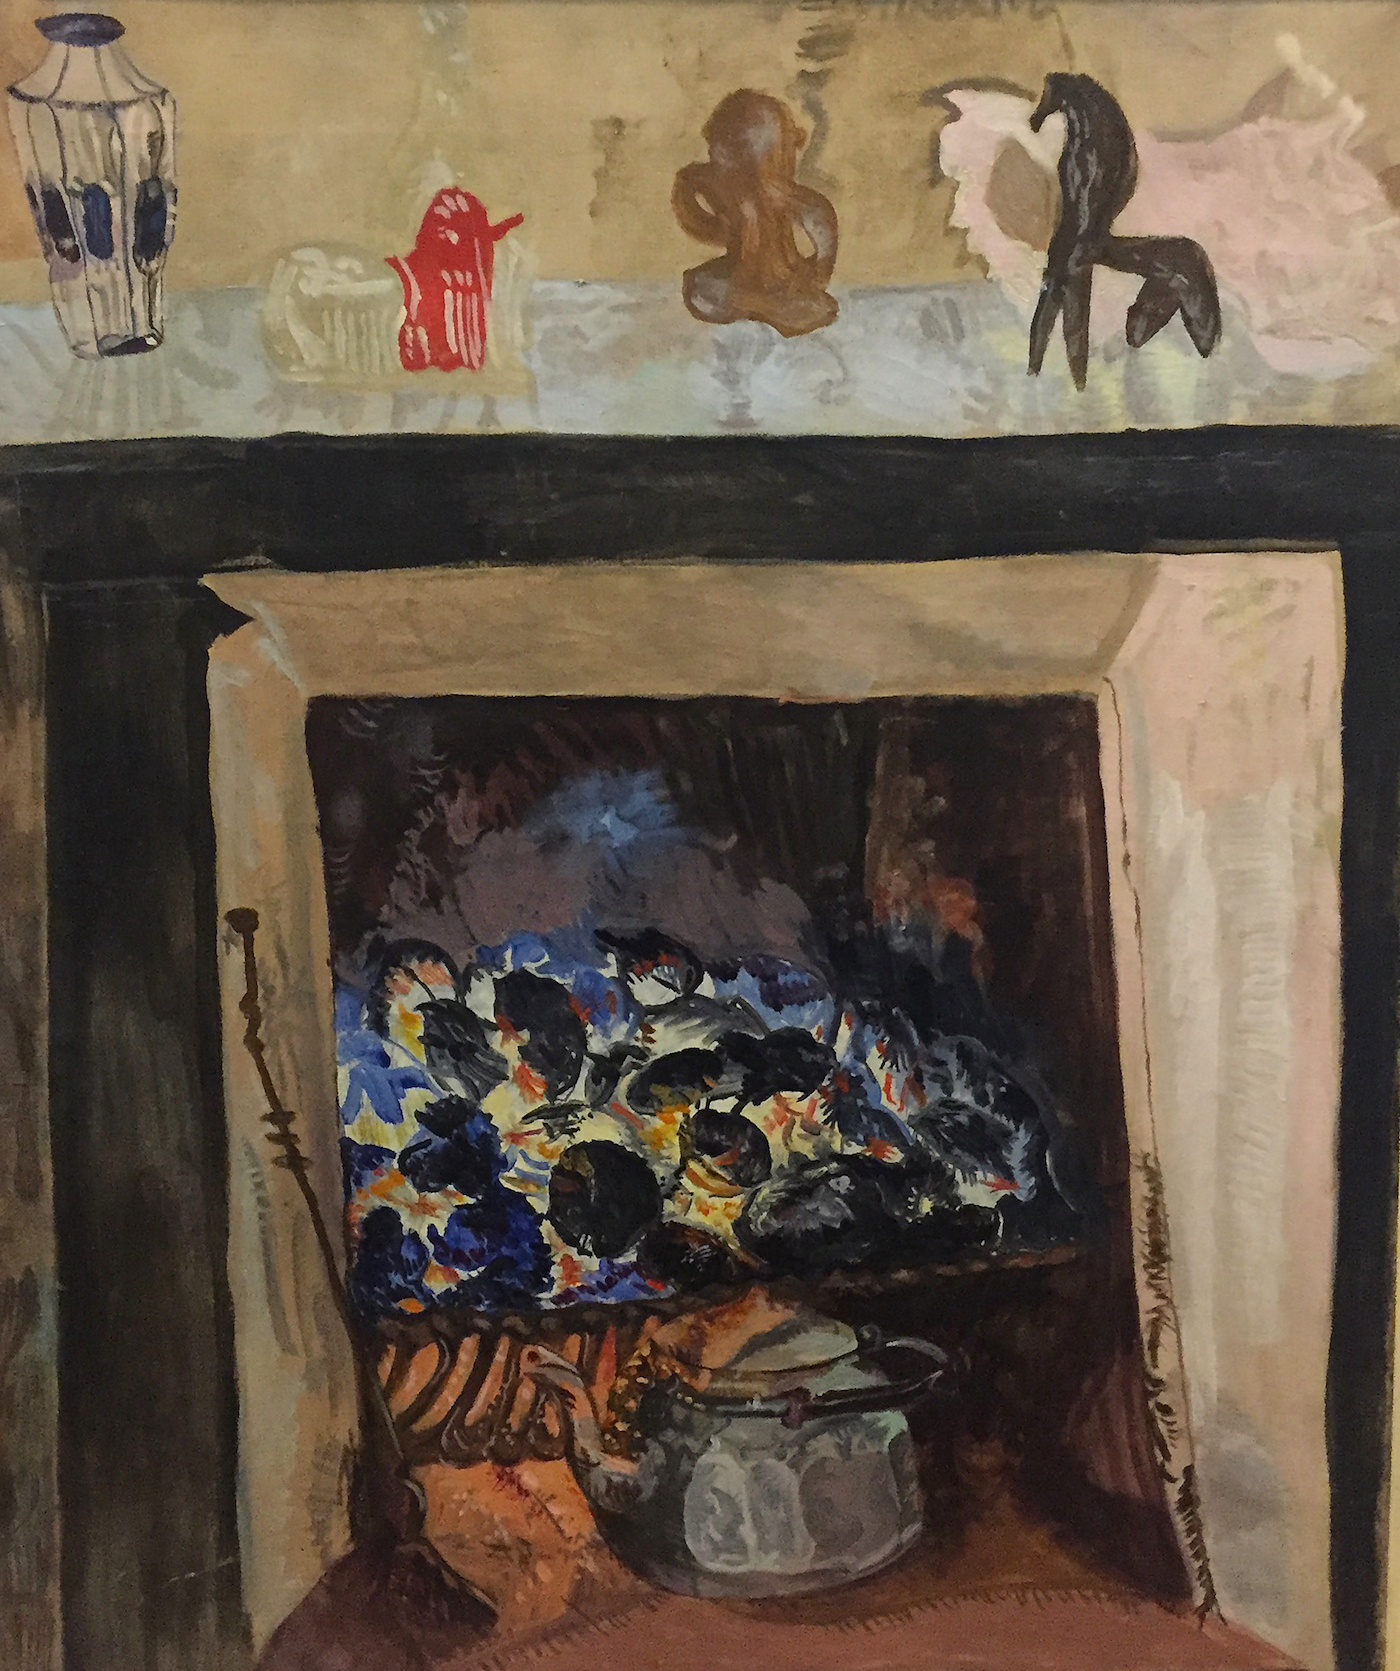 Anne Harvey, Fireplace, (n.d), oil on linen, 29 x 23 1/2 inches (courtesy Steven Harvey Fine Art Projects)